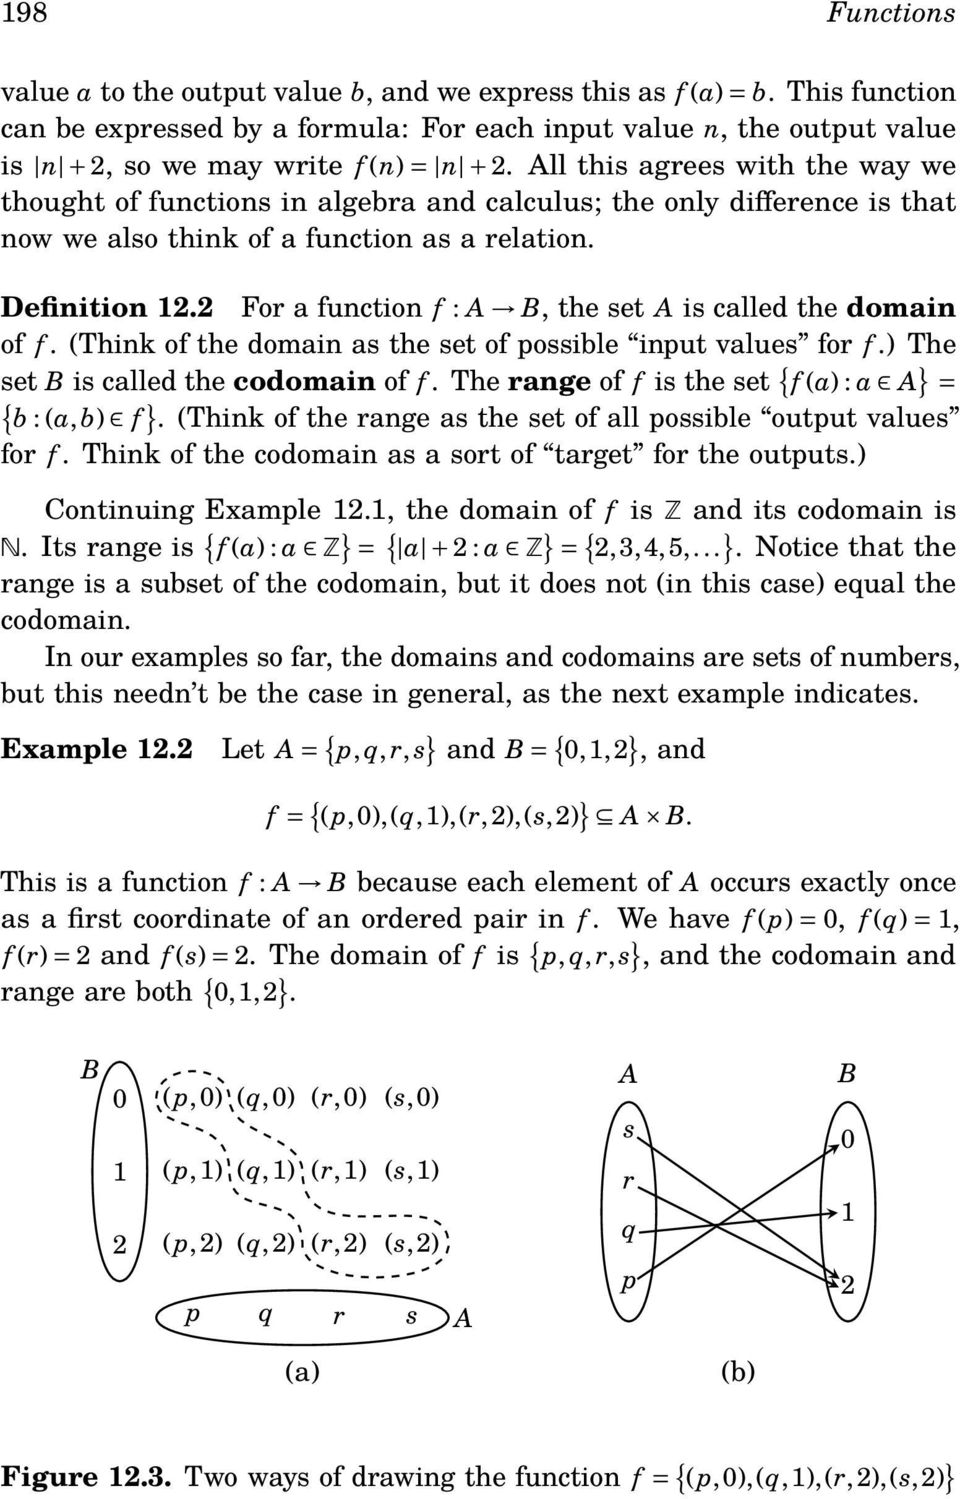 ll this agrees with the way we thought of functions in algebra and calculus; the only difference is that now we also think of a function as a relation. Definition 12.